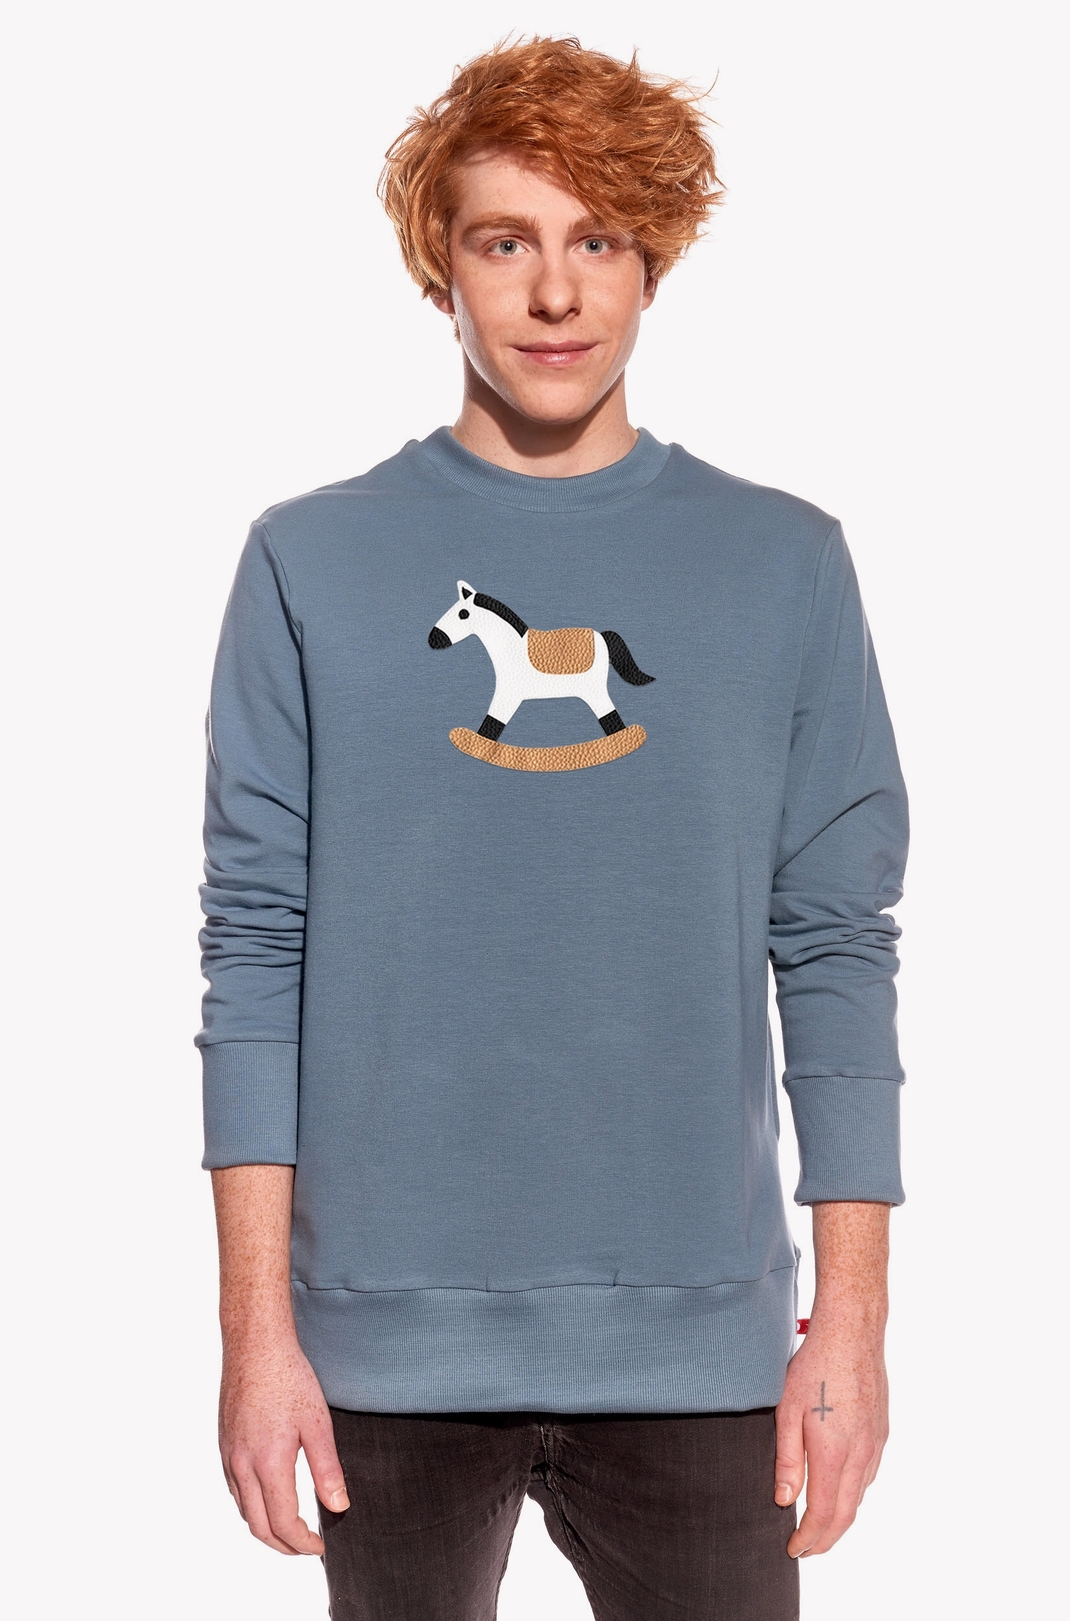 Hoodie with rocking horse